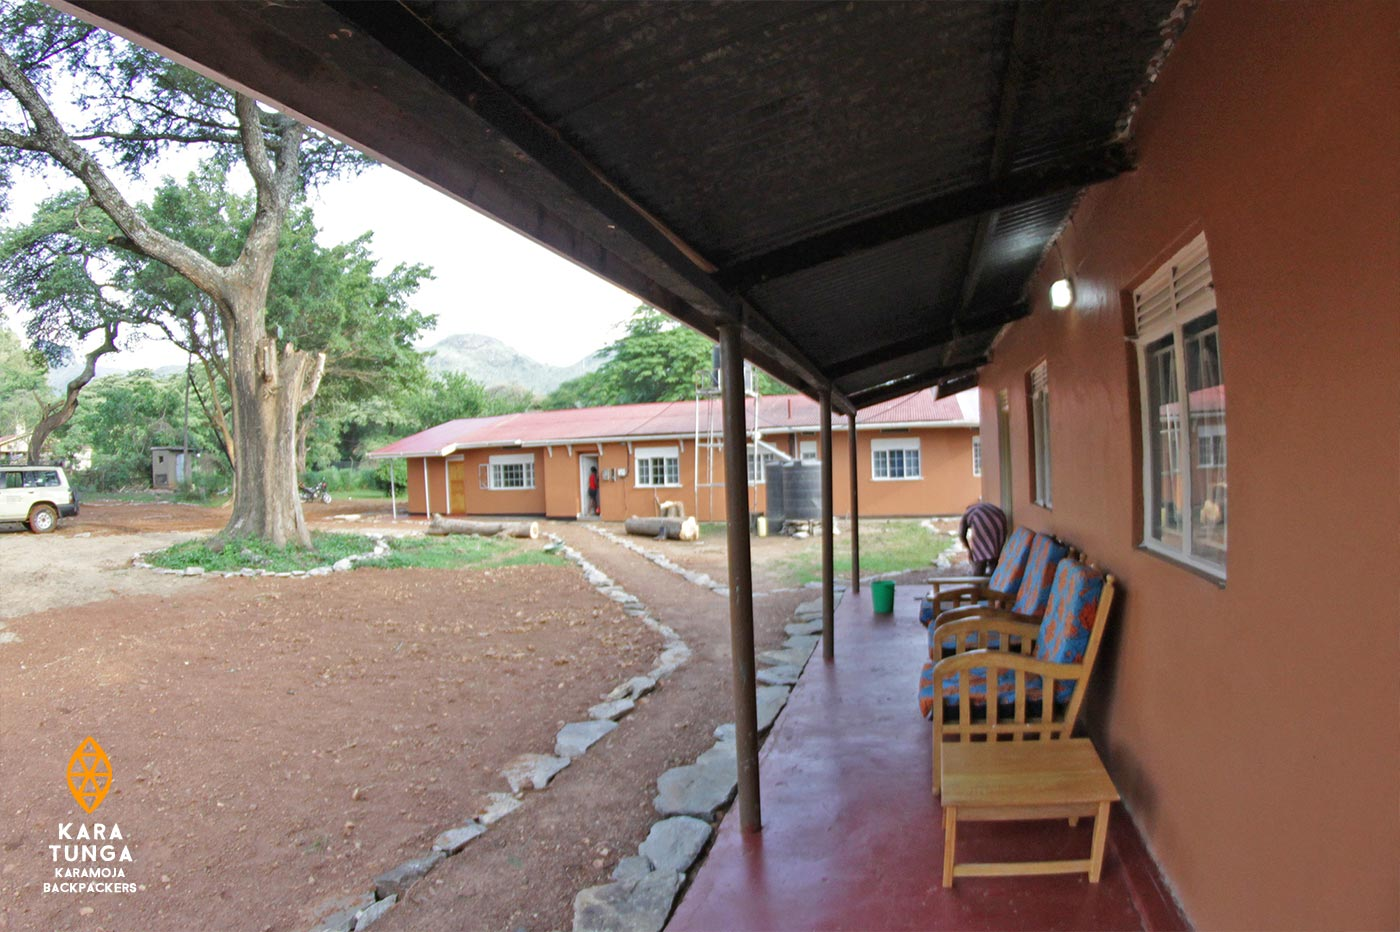 kara-tunga-karamoja-backpackers-hostel-13